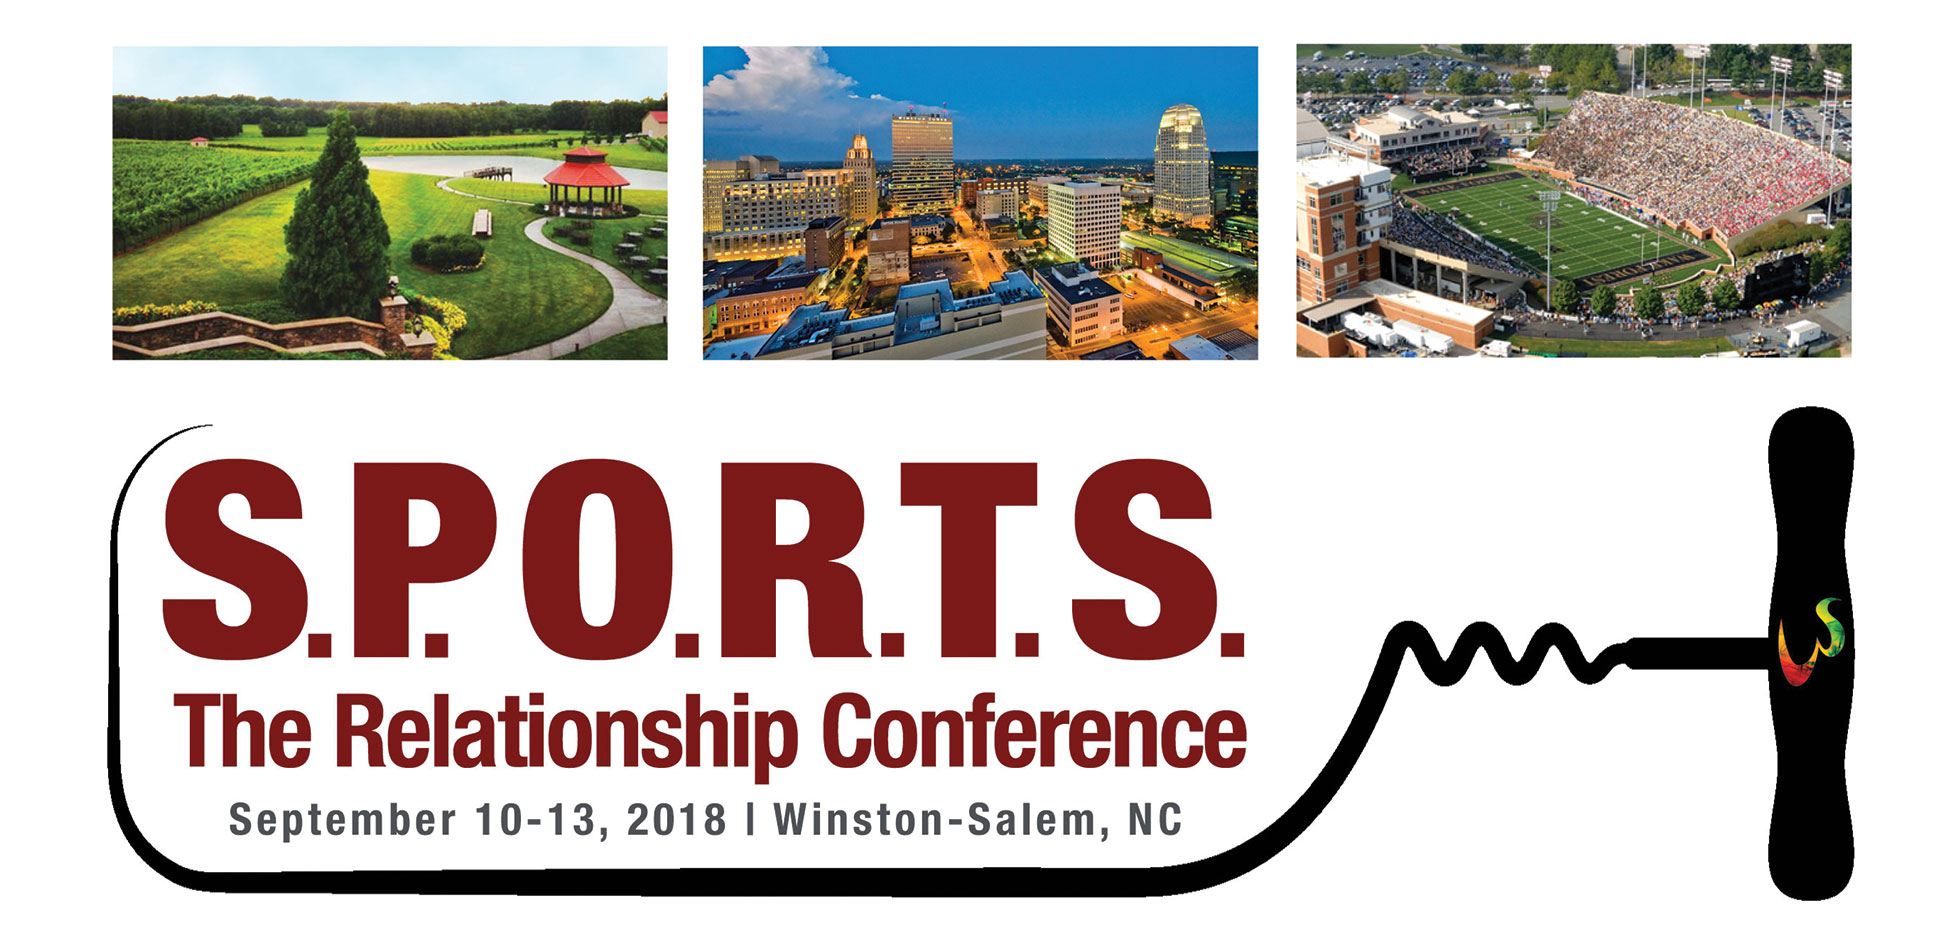 S.P.O.R.T.S. 2018 - The Relationship Conference